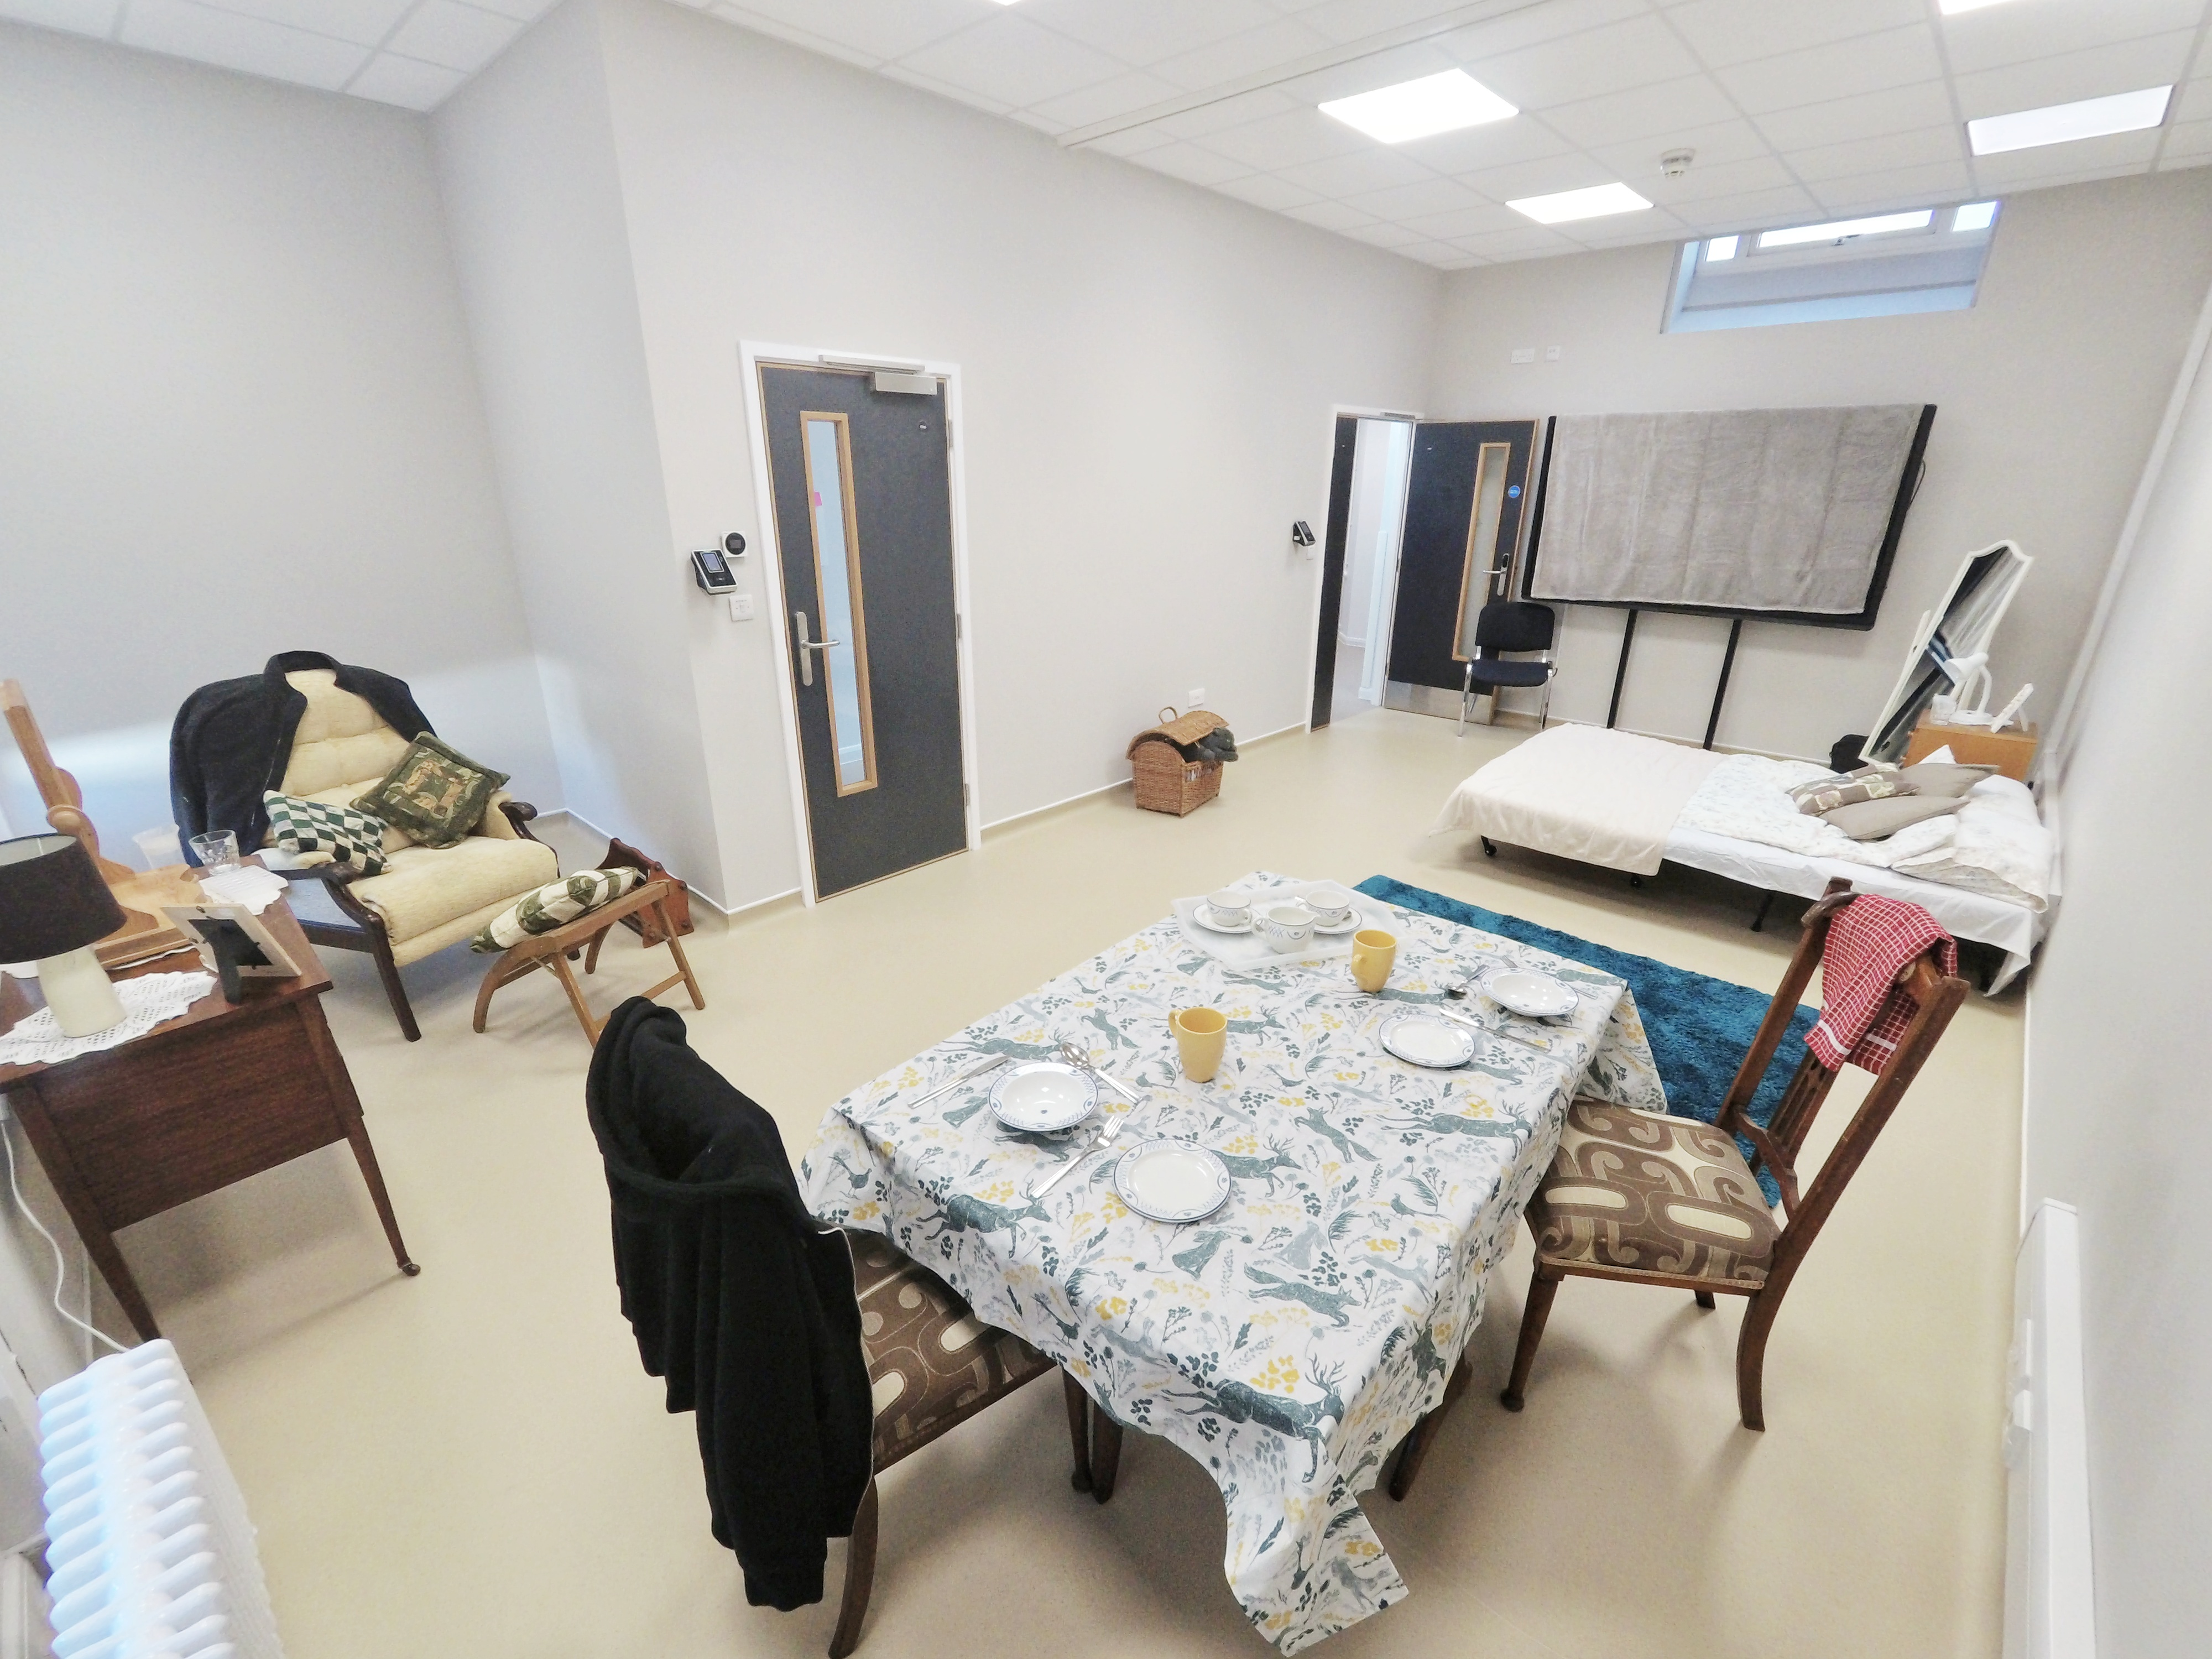 The community rooms set up to resemble a patient's home